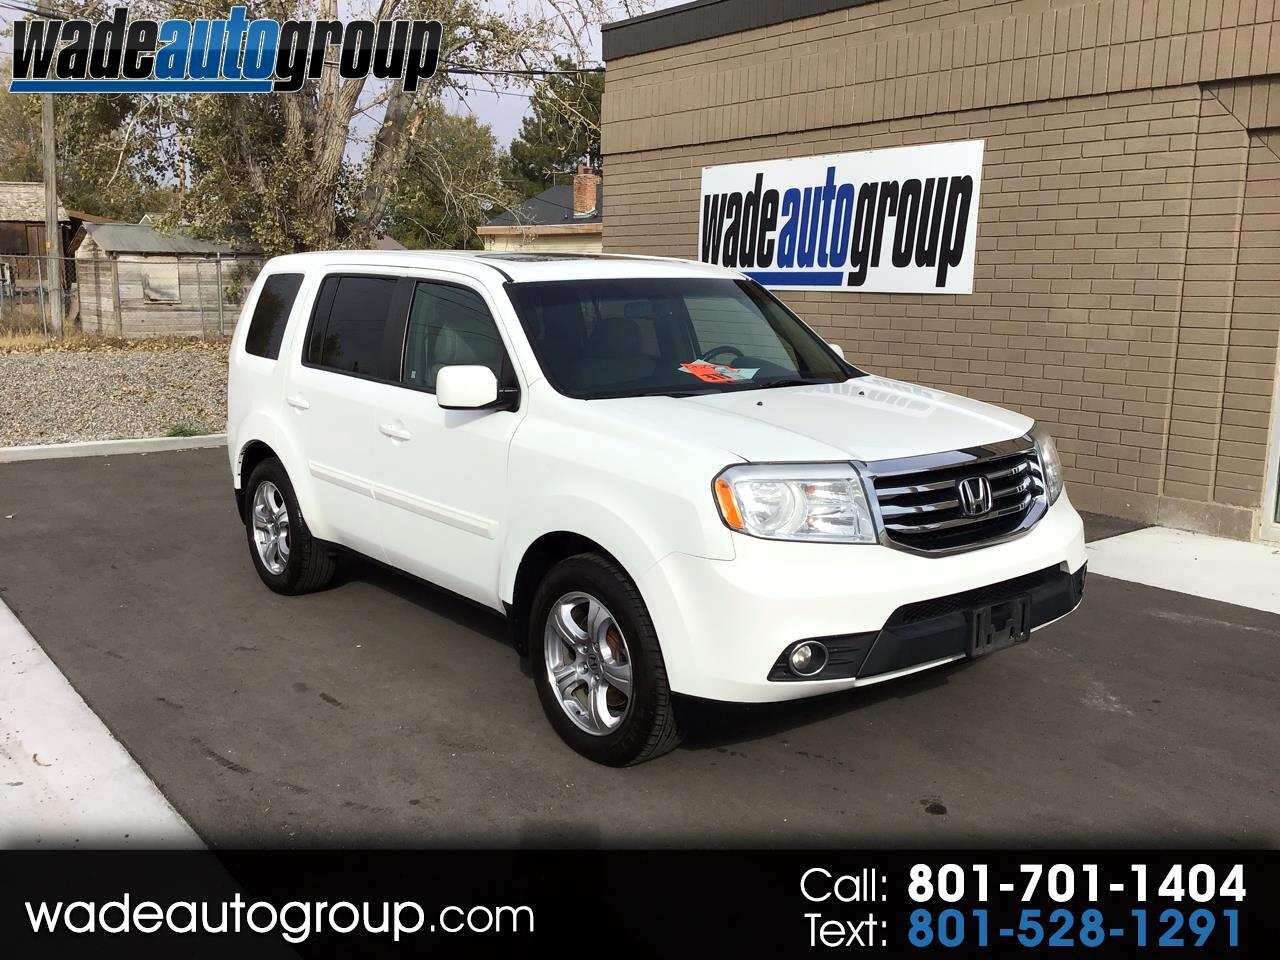 2013 Honda Pilot Ex L For Sale >> Used 2013 Honda Pilot Ex L 4wd 5 Spd At For Sale In Draper